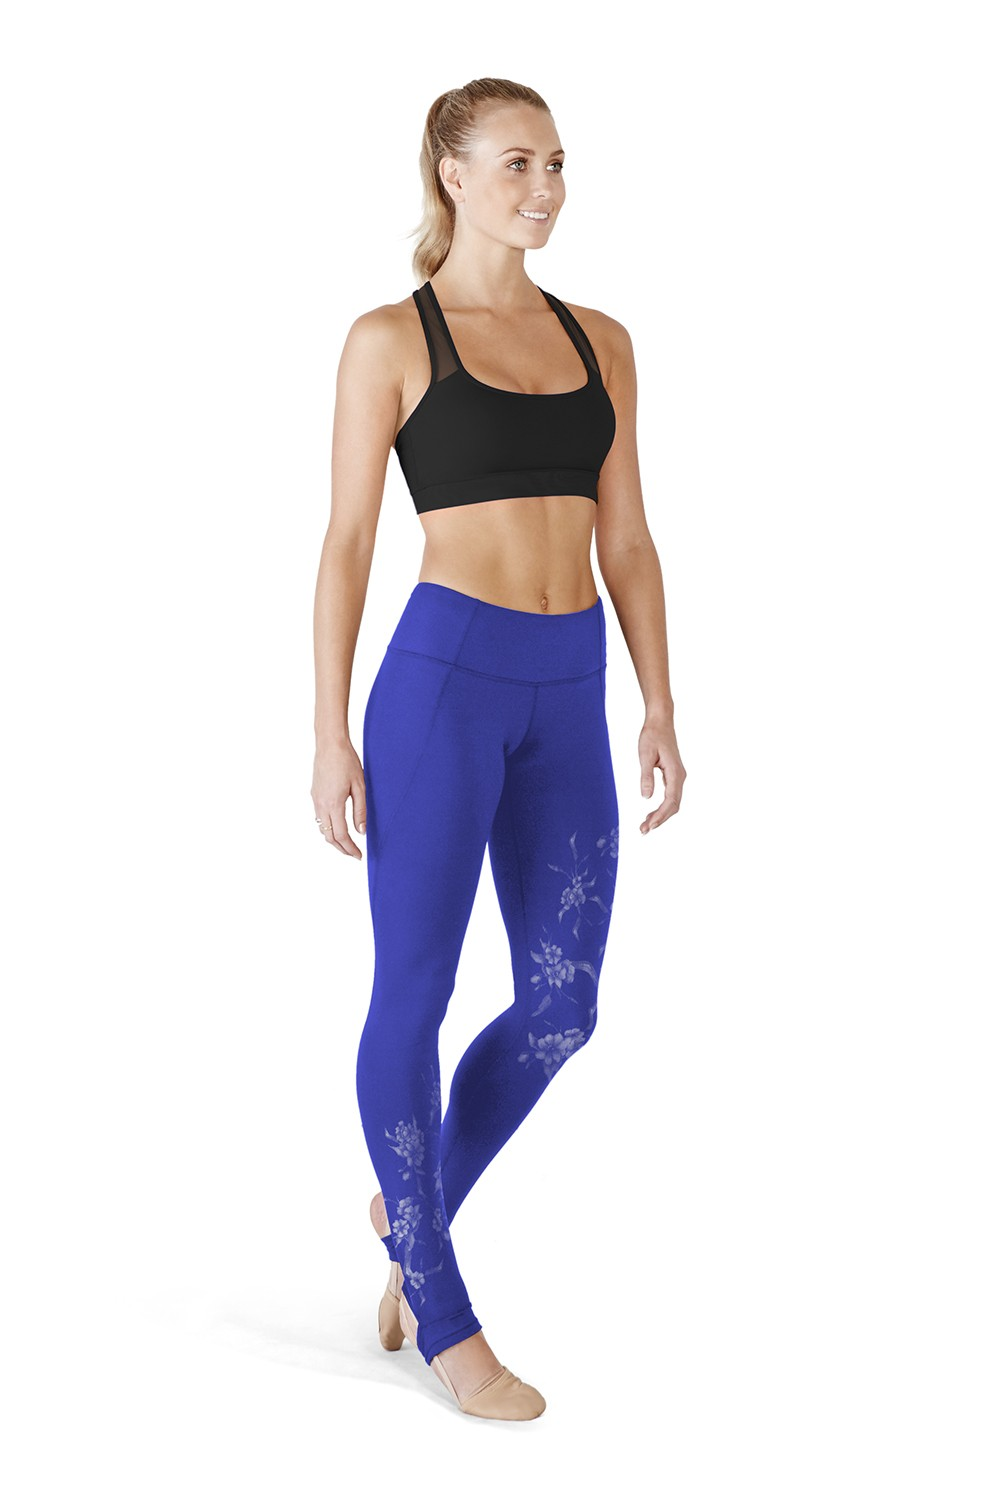 Velda Women's Bottoms